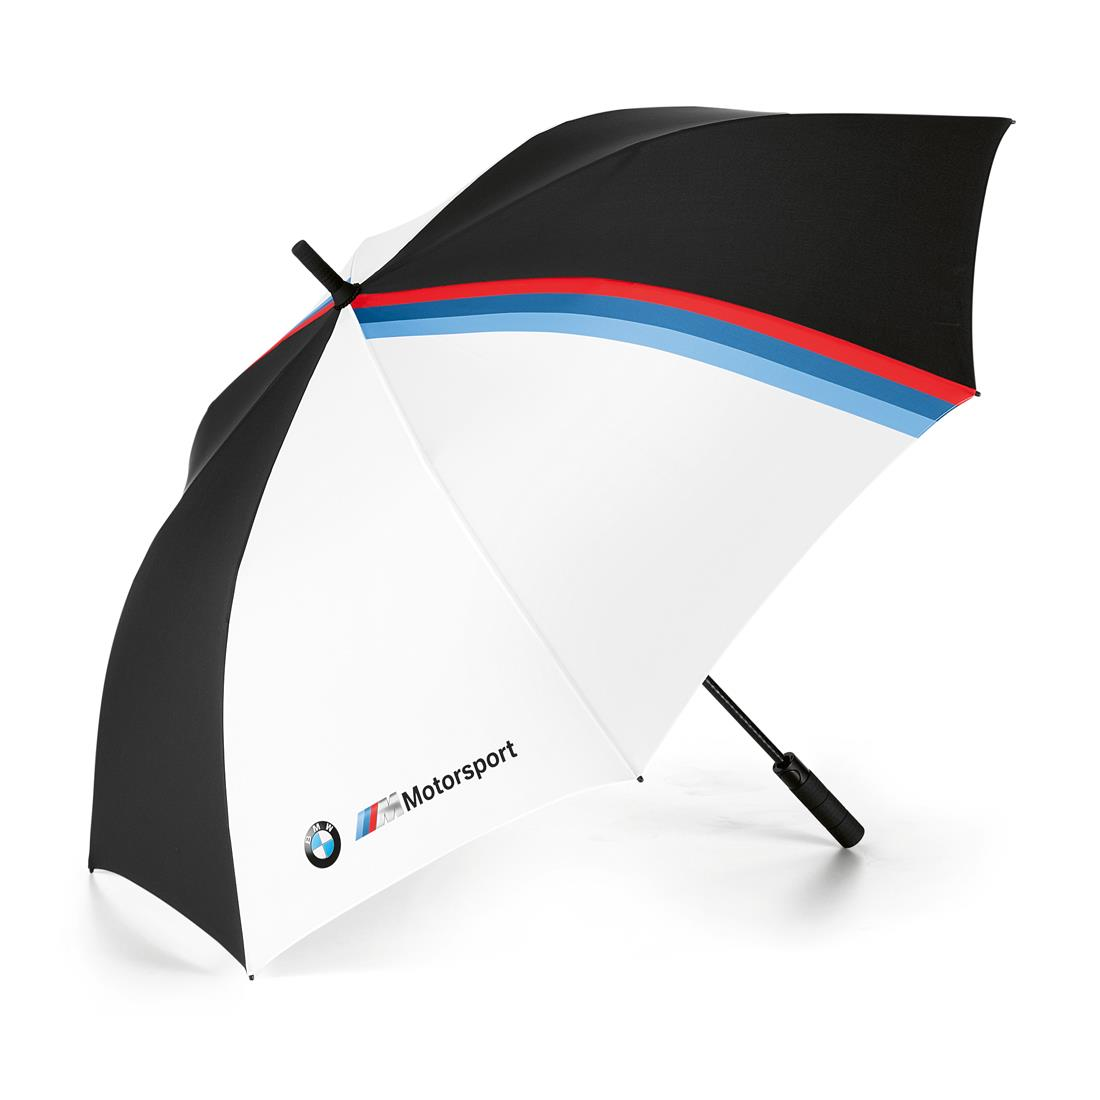 BMW Motorsport Umbrella